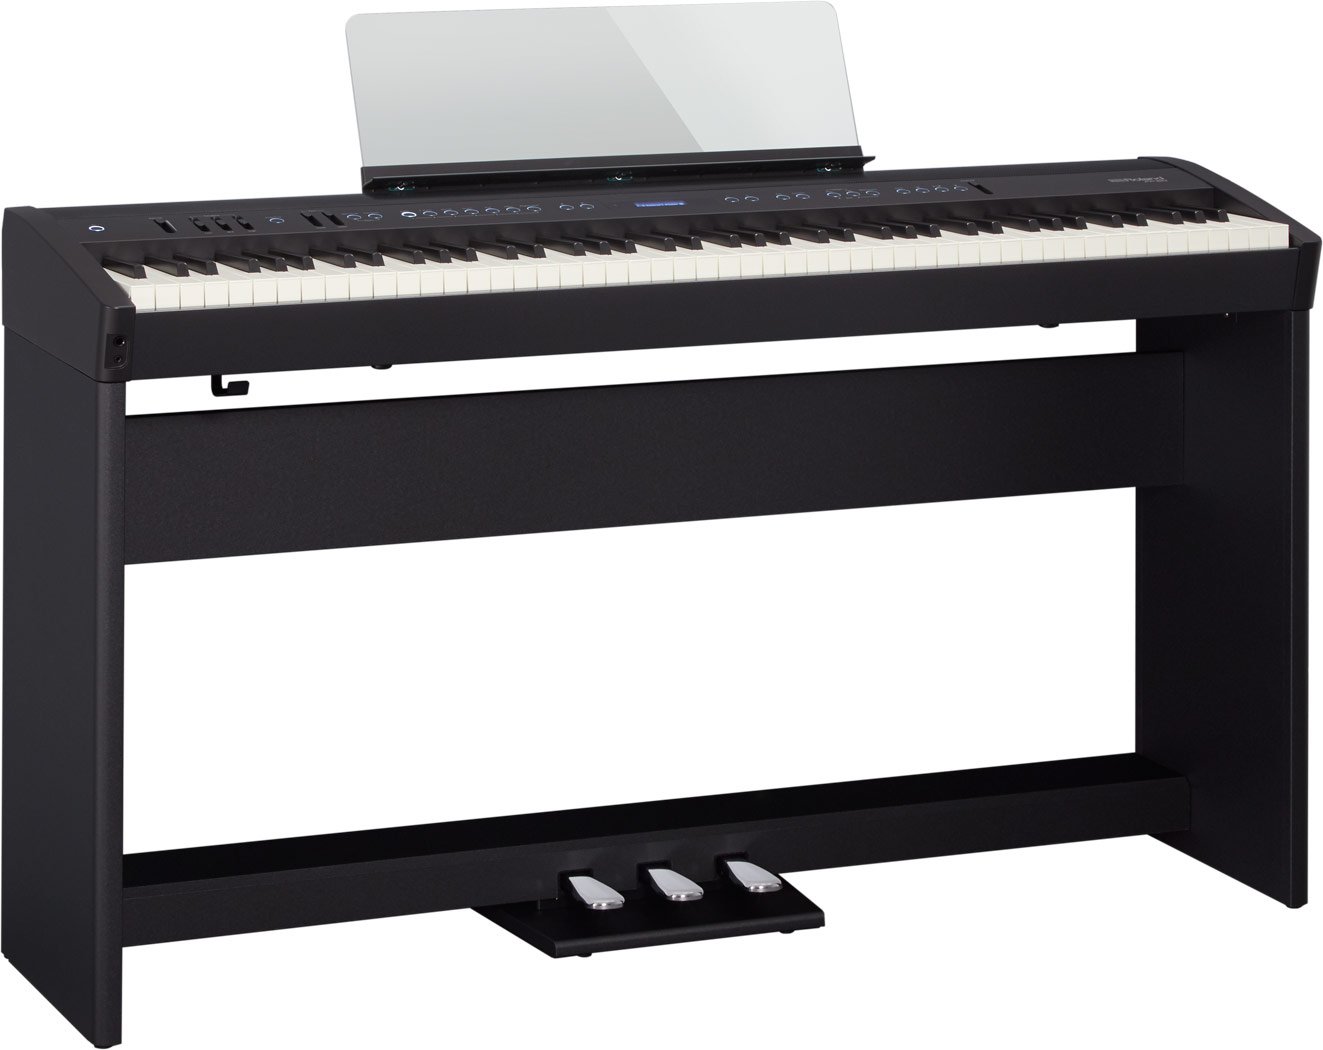 FP-60 Digital Piano